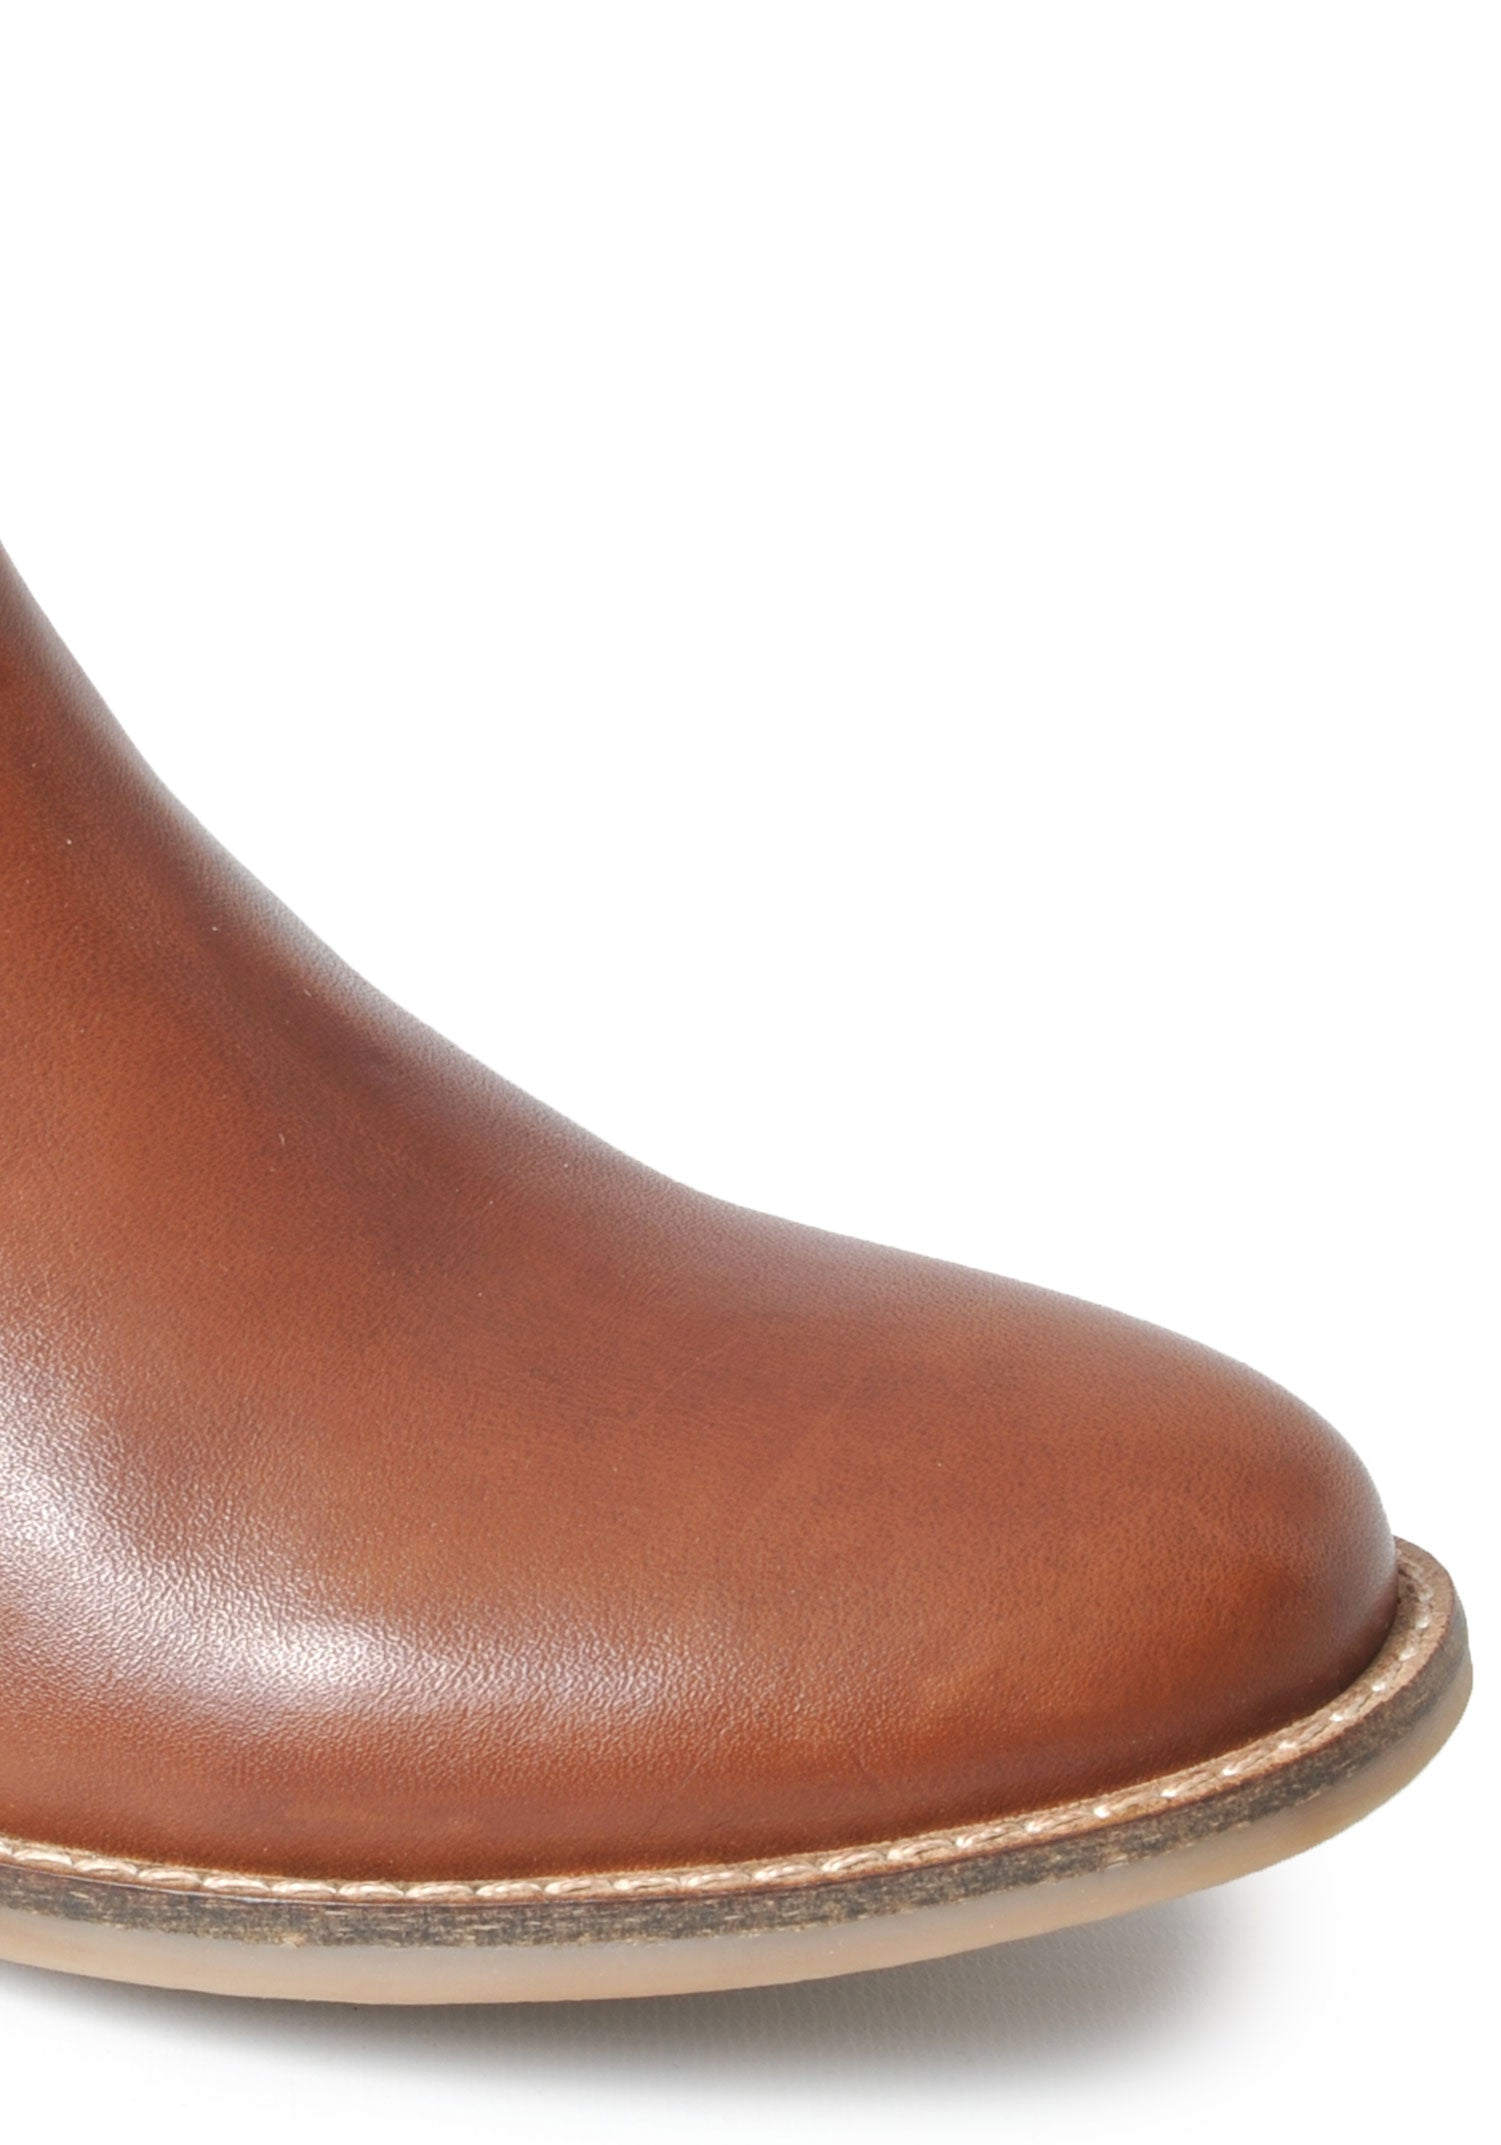 Stitched toe detail, leather upper tan brown